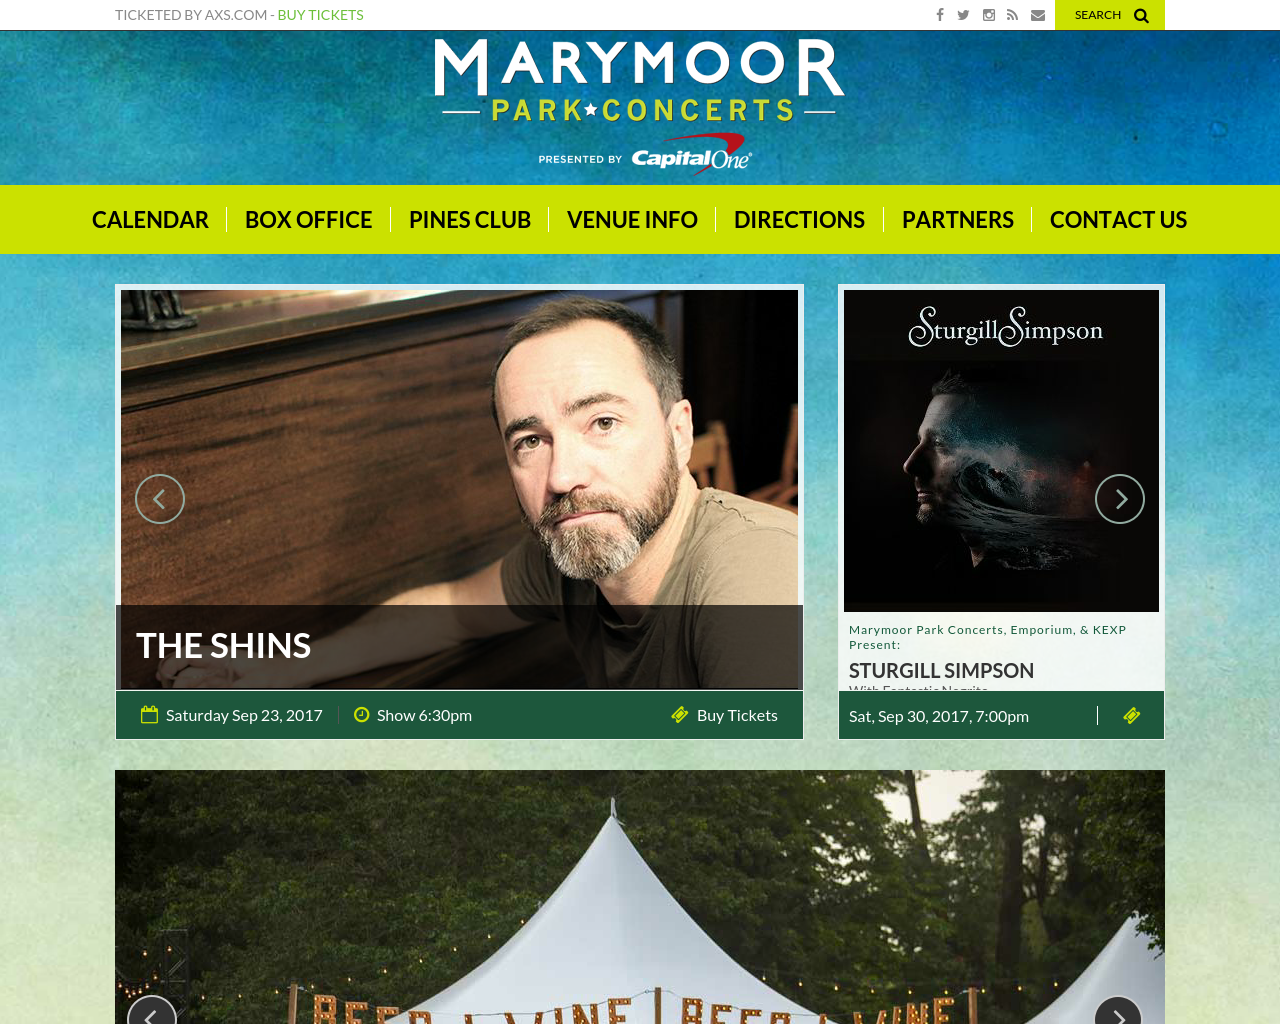 Marymoor-Park-Concerts-Advertising-Reviews-Pricing